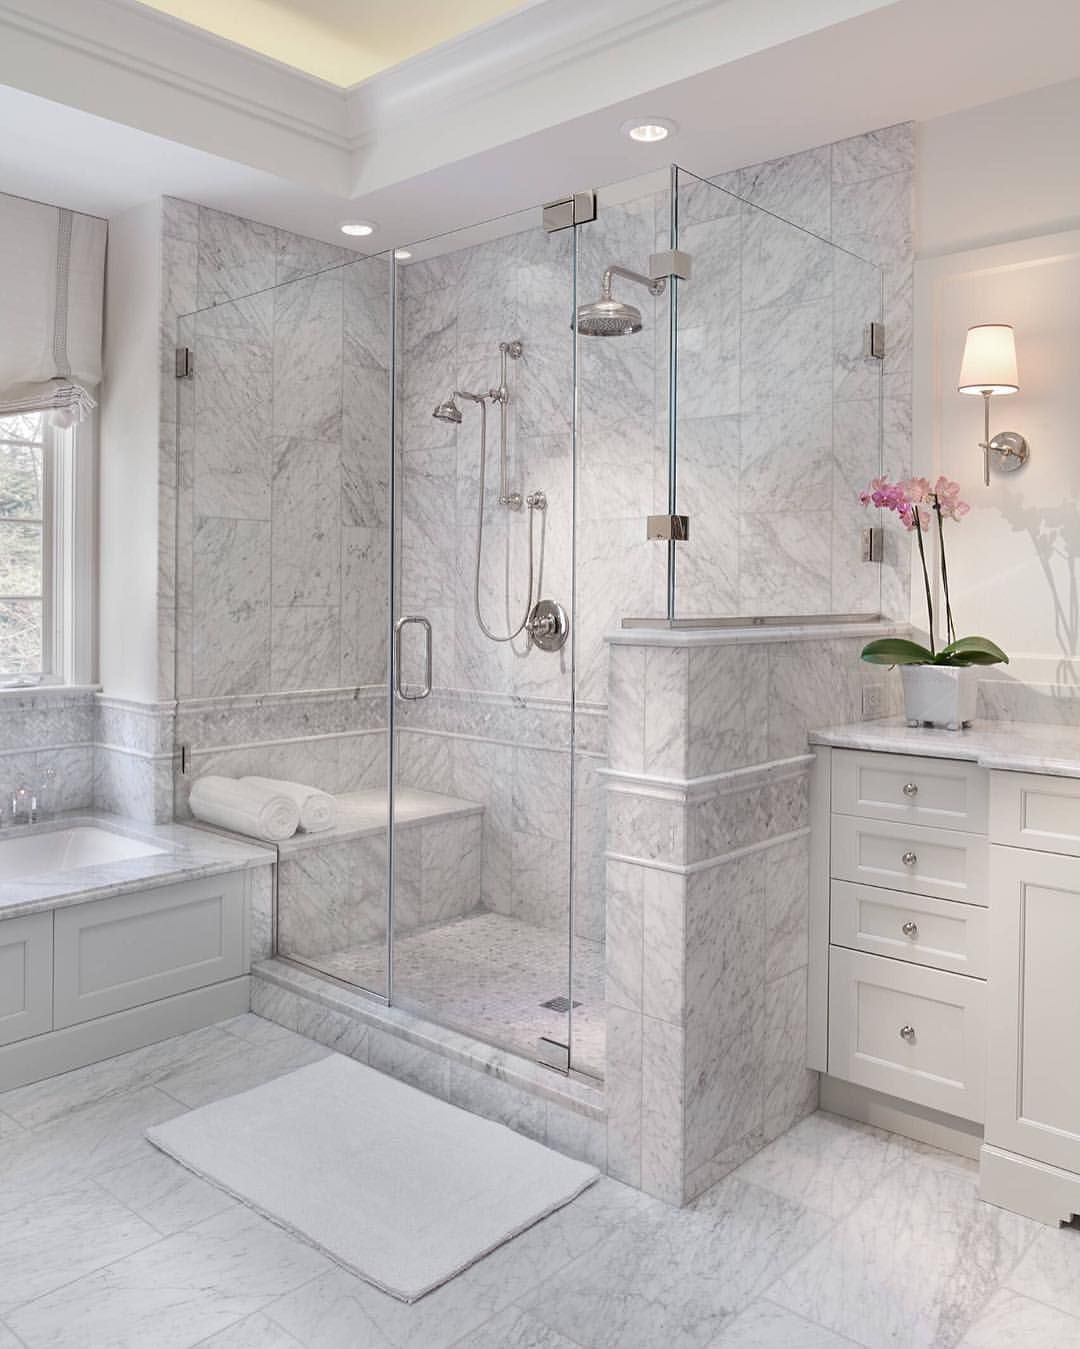 Your Guide To Small Bathroom Ideas Shower For Your Home Bathroom Remodel Designs Bathroom Remodel Master Bathroom Vanity Remodel